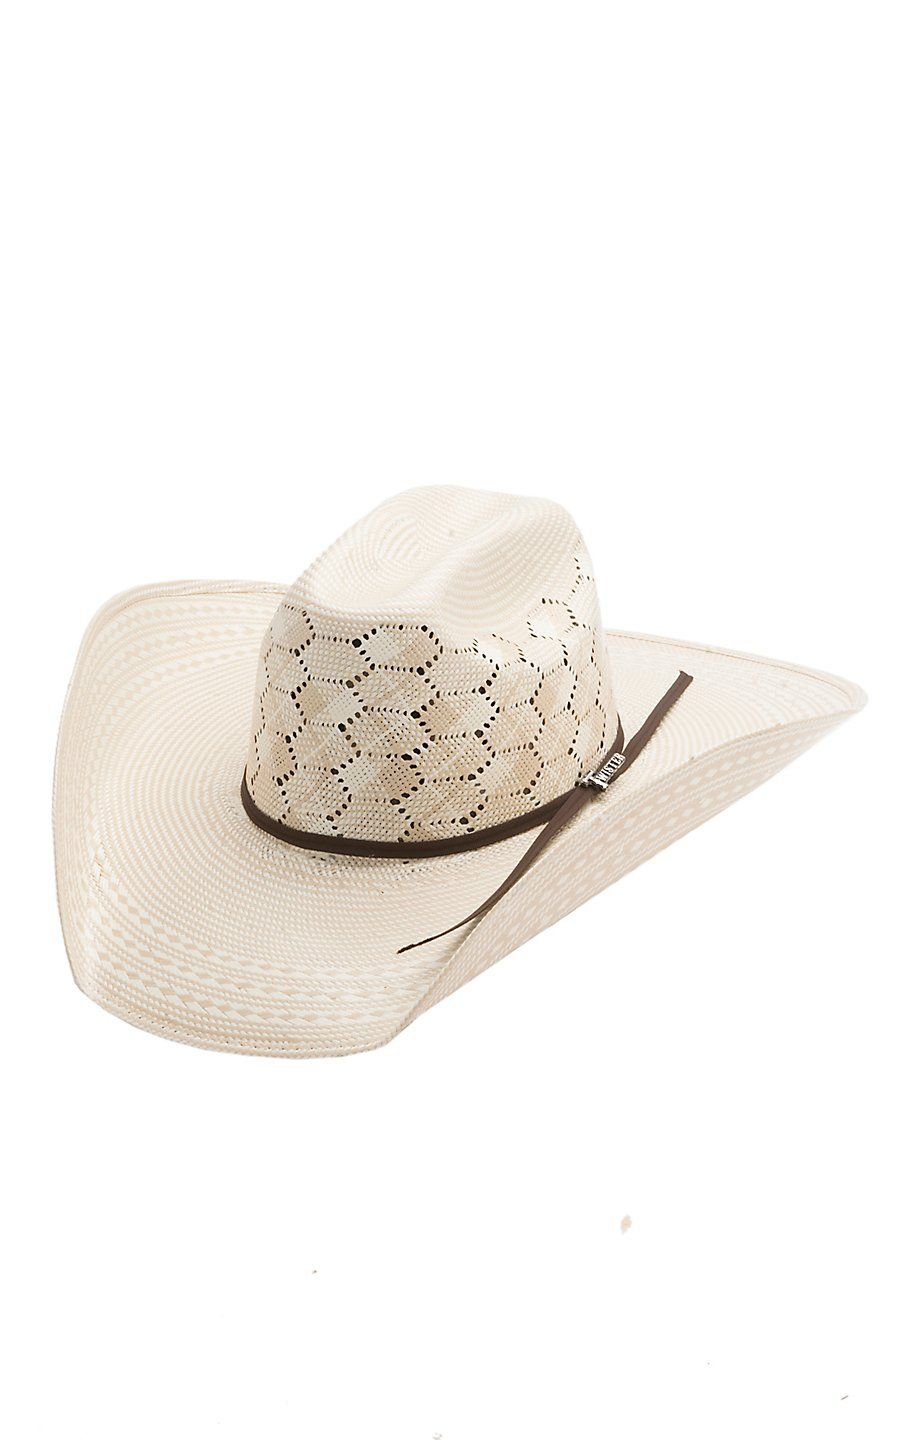 90fc21d6c32 Twister 10X Two Tone Hex Vent Straw Cowboy Hat